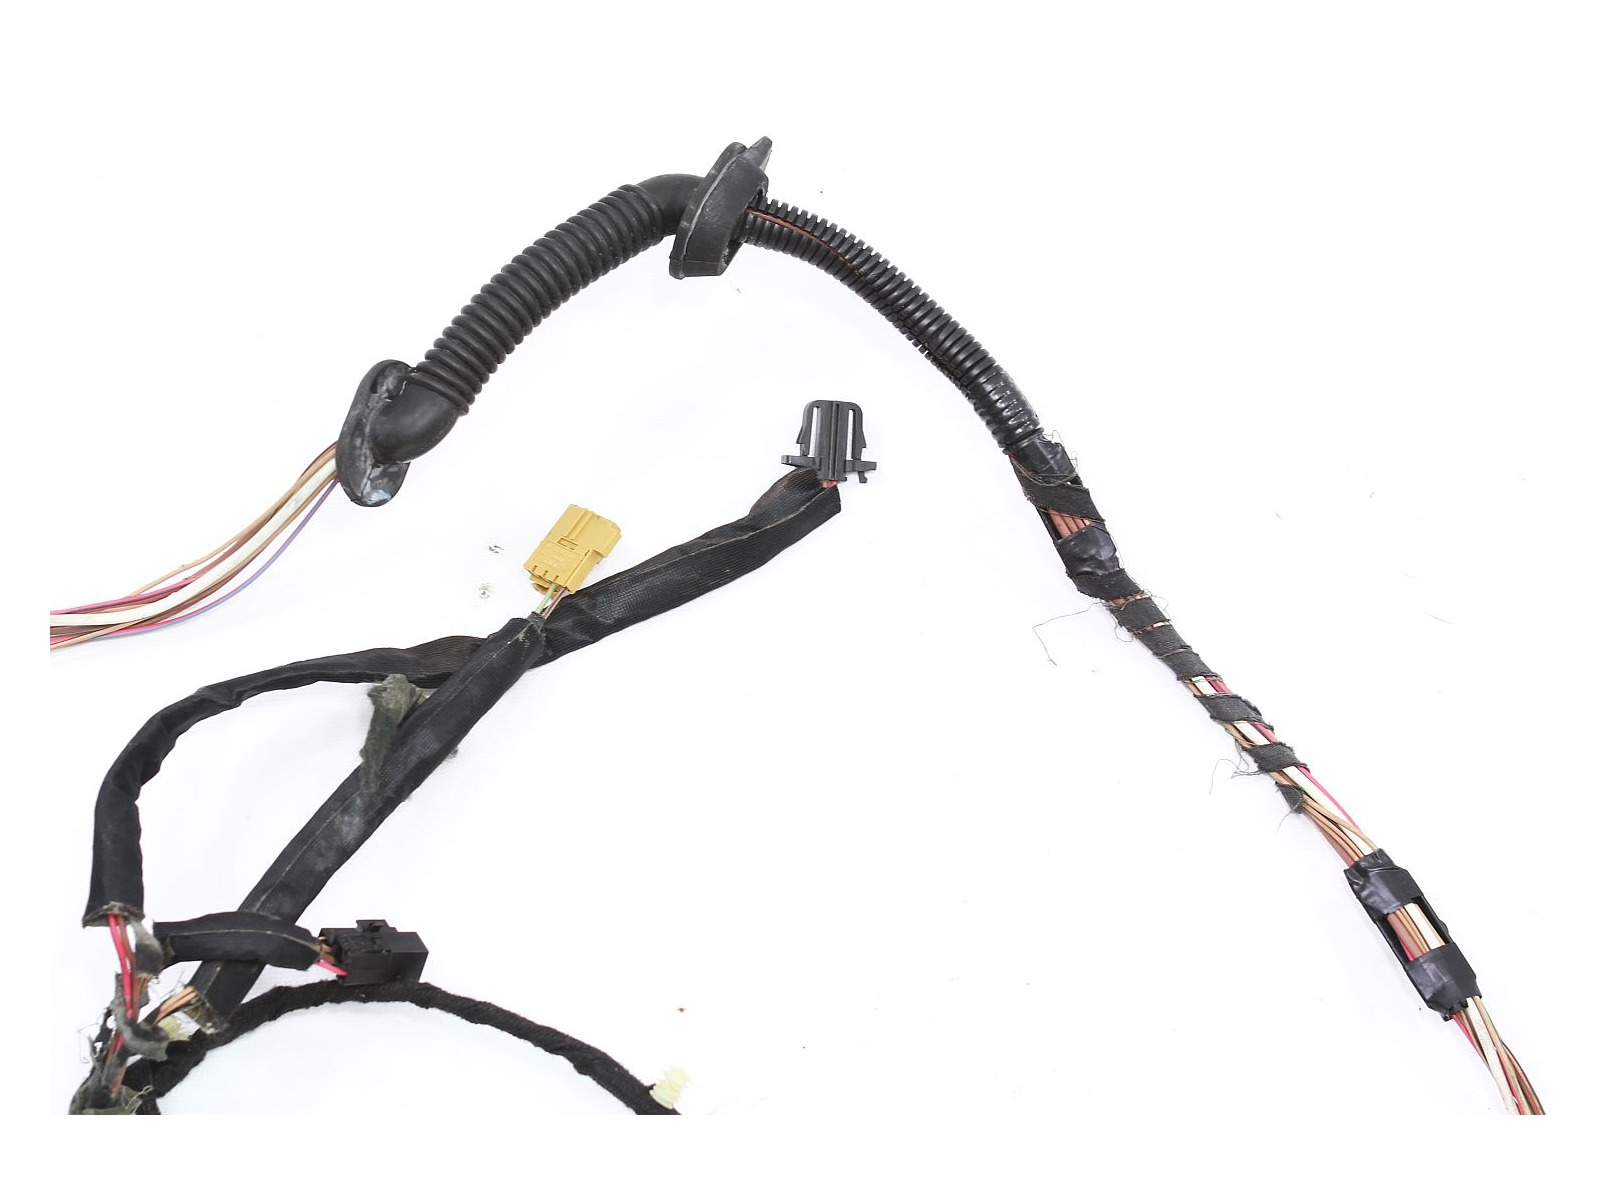 hatch lid wiring harness 98-05 vw beetle